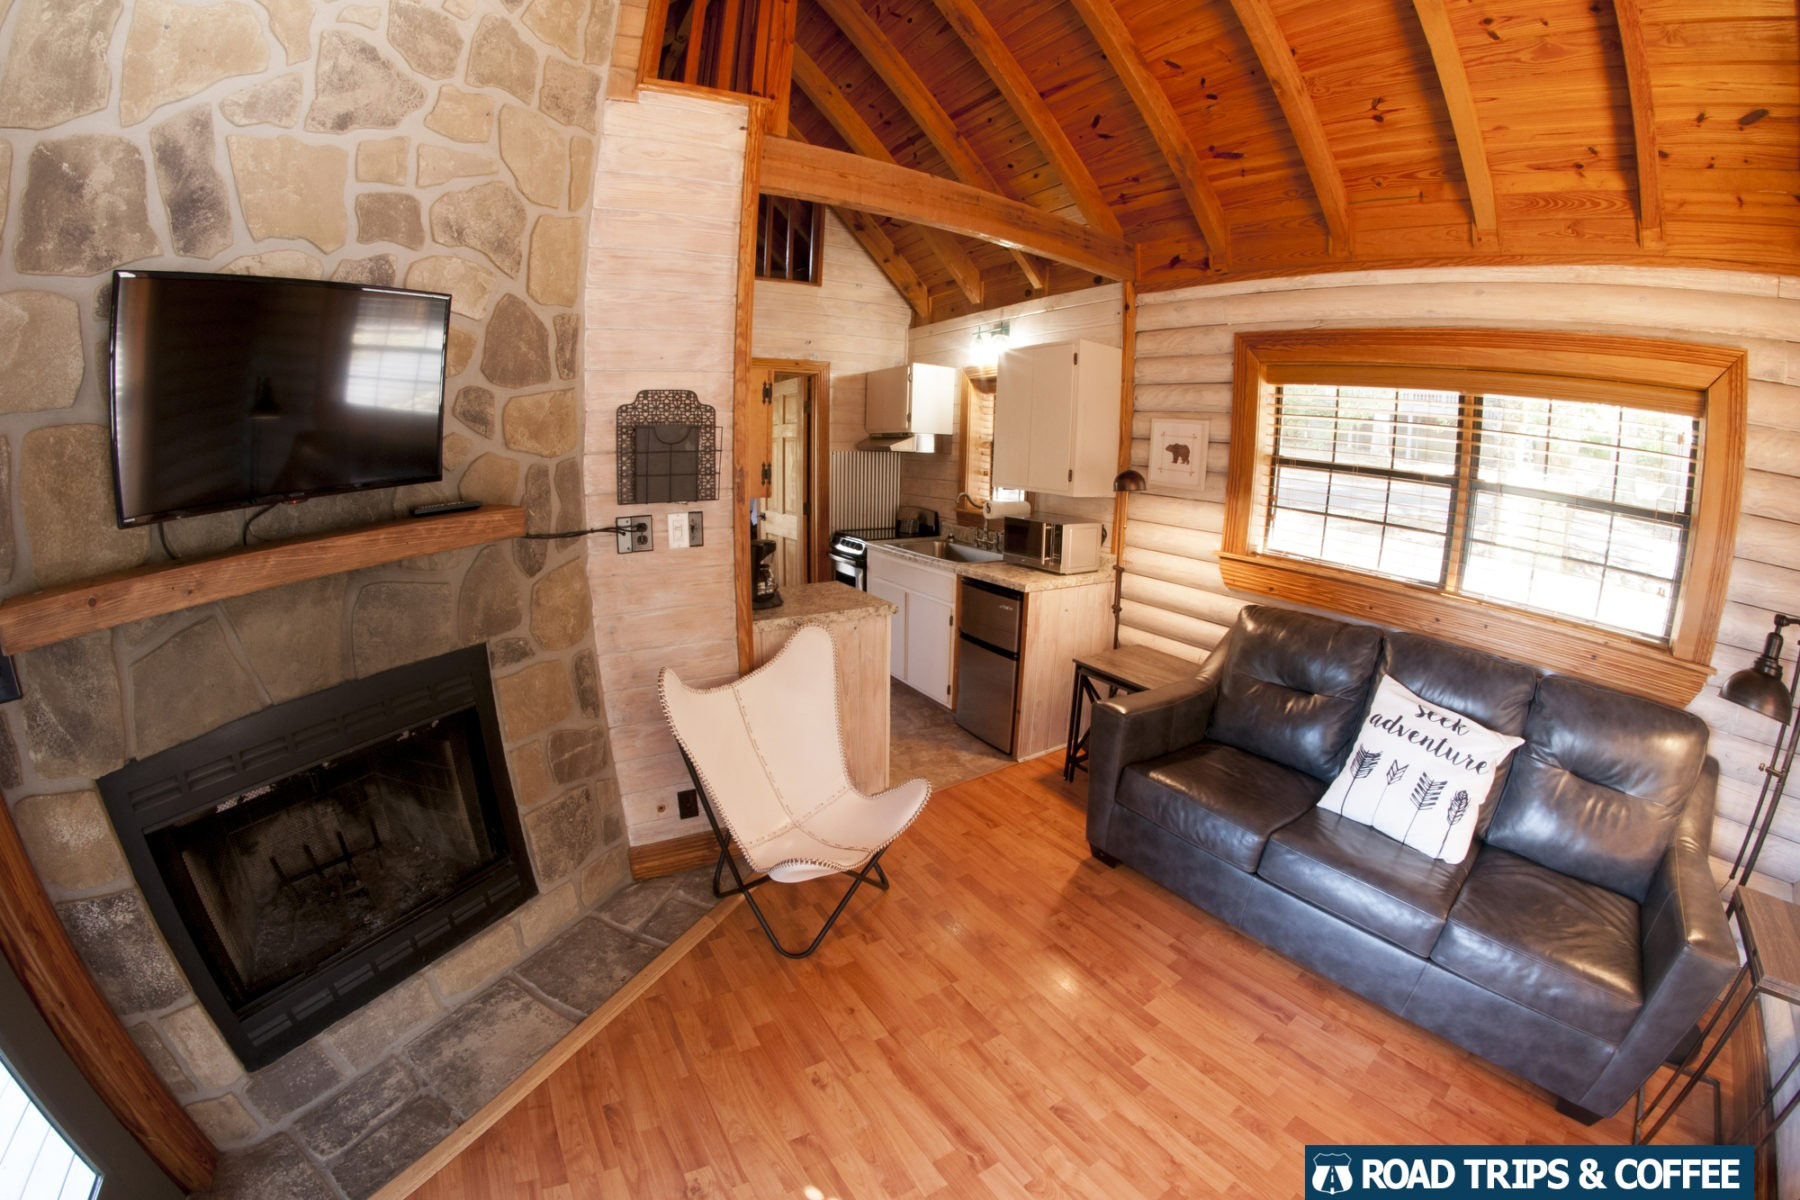 A fireplace, television, and comfortable leather couch inside a premiere cabin at Little Arrow Outdoor Resort in Townsend, Tennessee